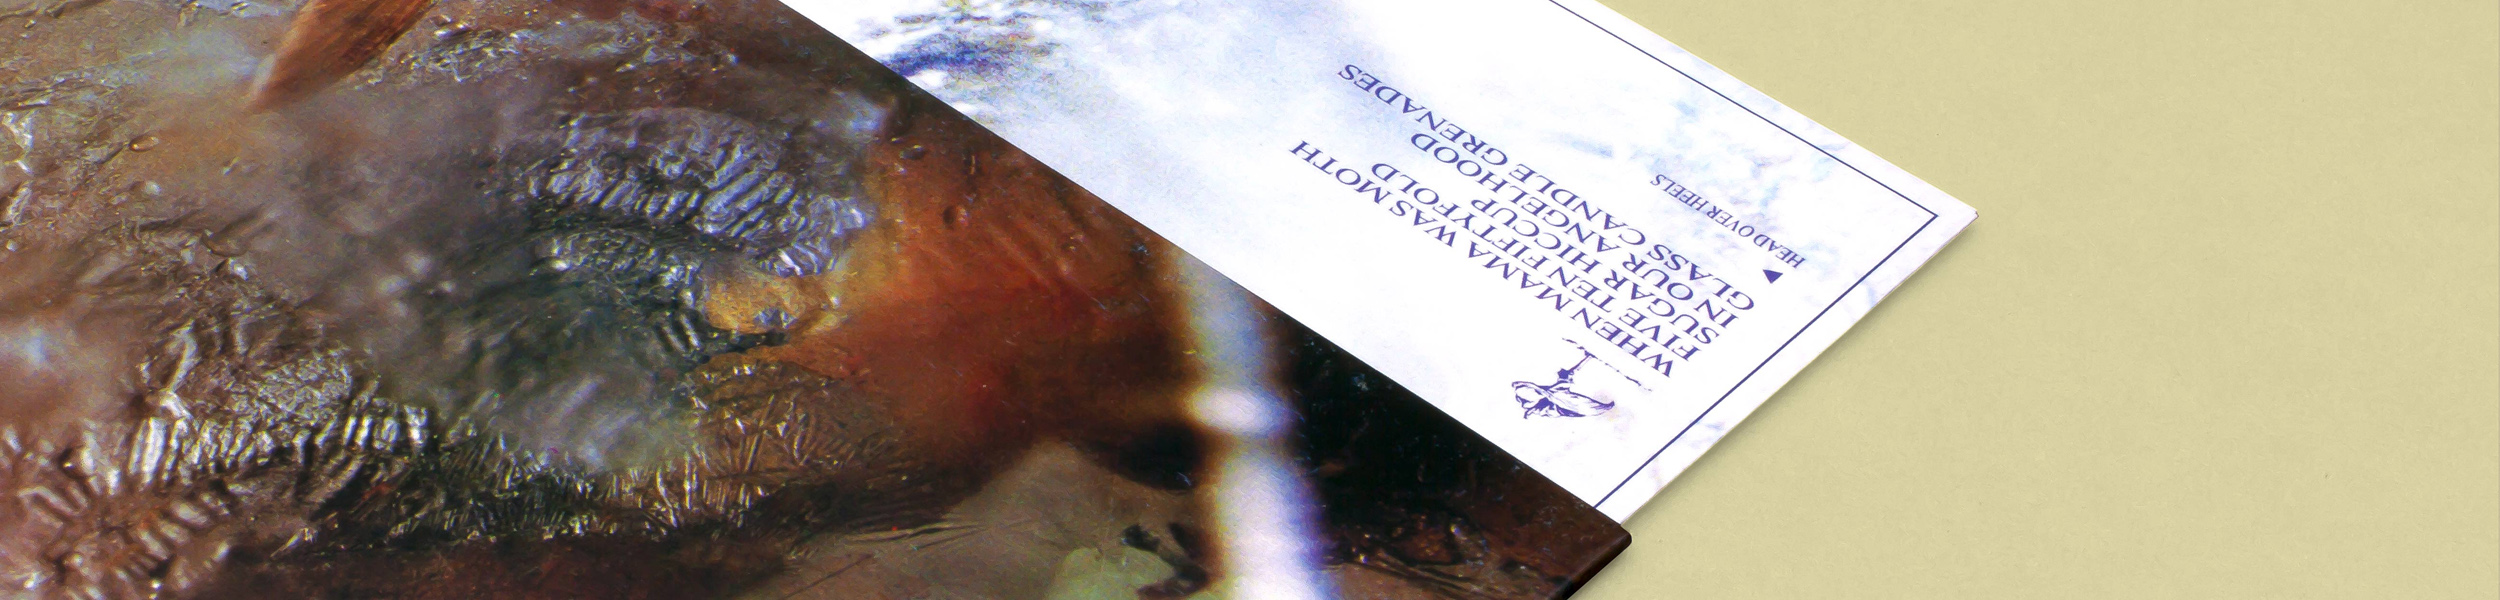 Cocteau Twins - 'Treasure' and 'Head Over Heels' Back In Print Now